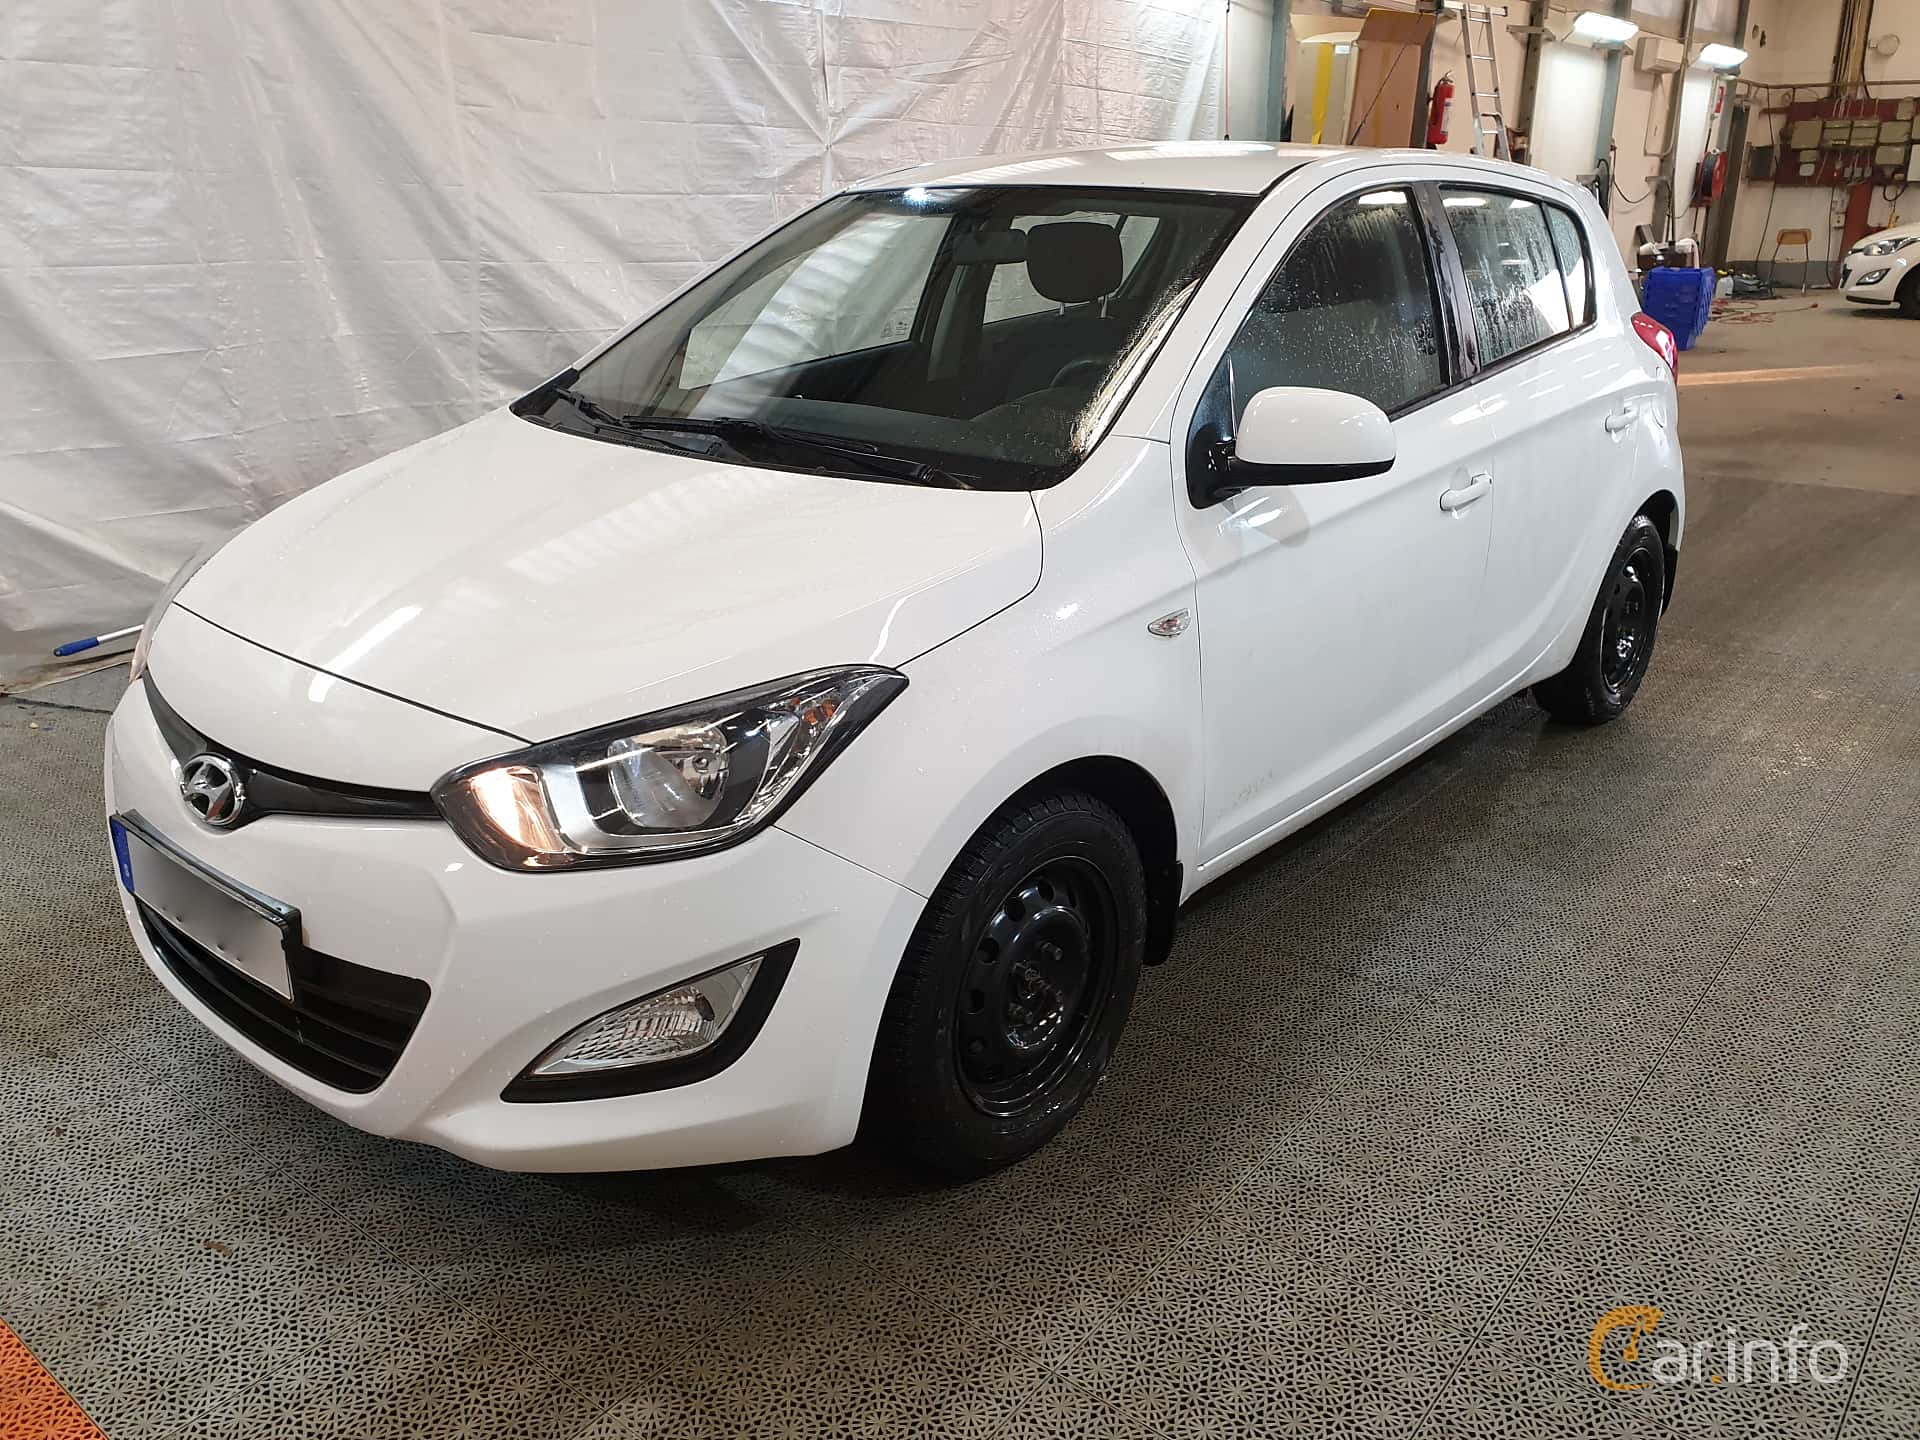 Hyundai i20 5-door 1.2 Manual, 86hp, 2013